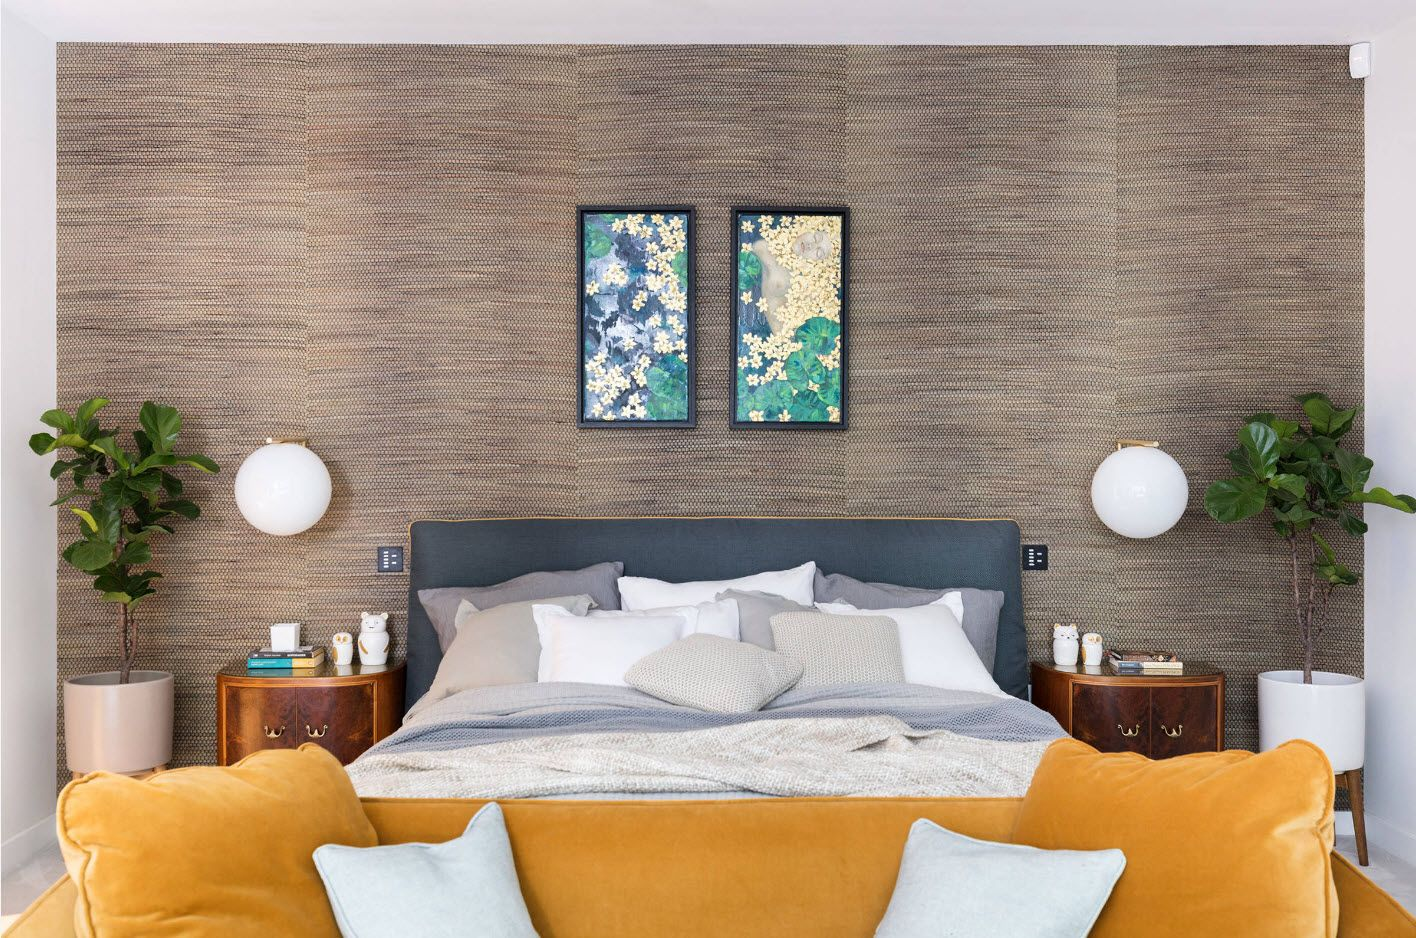 Accent texture wall at the headboard with sphere nightstands of the modern bedroom